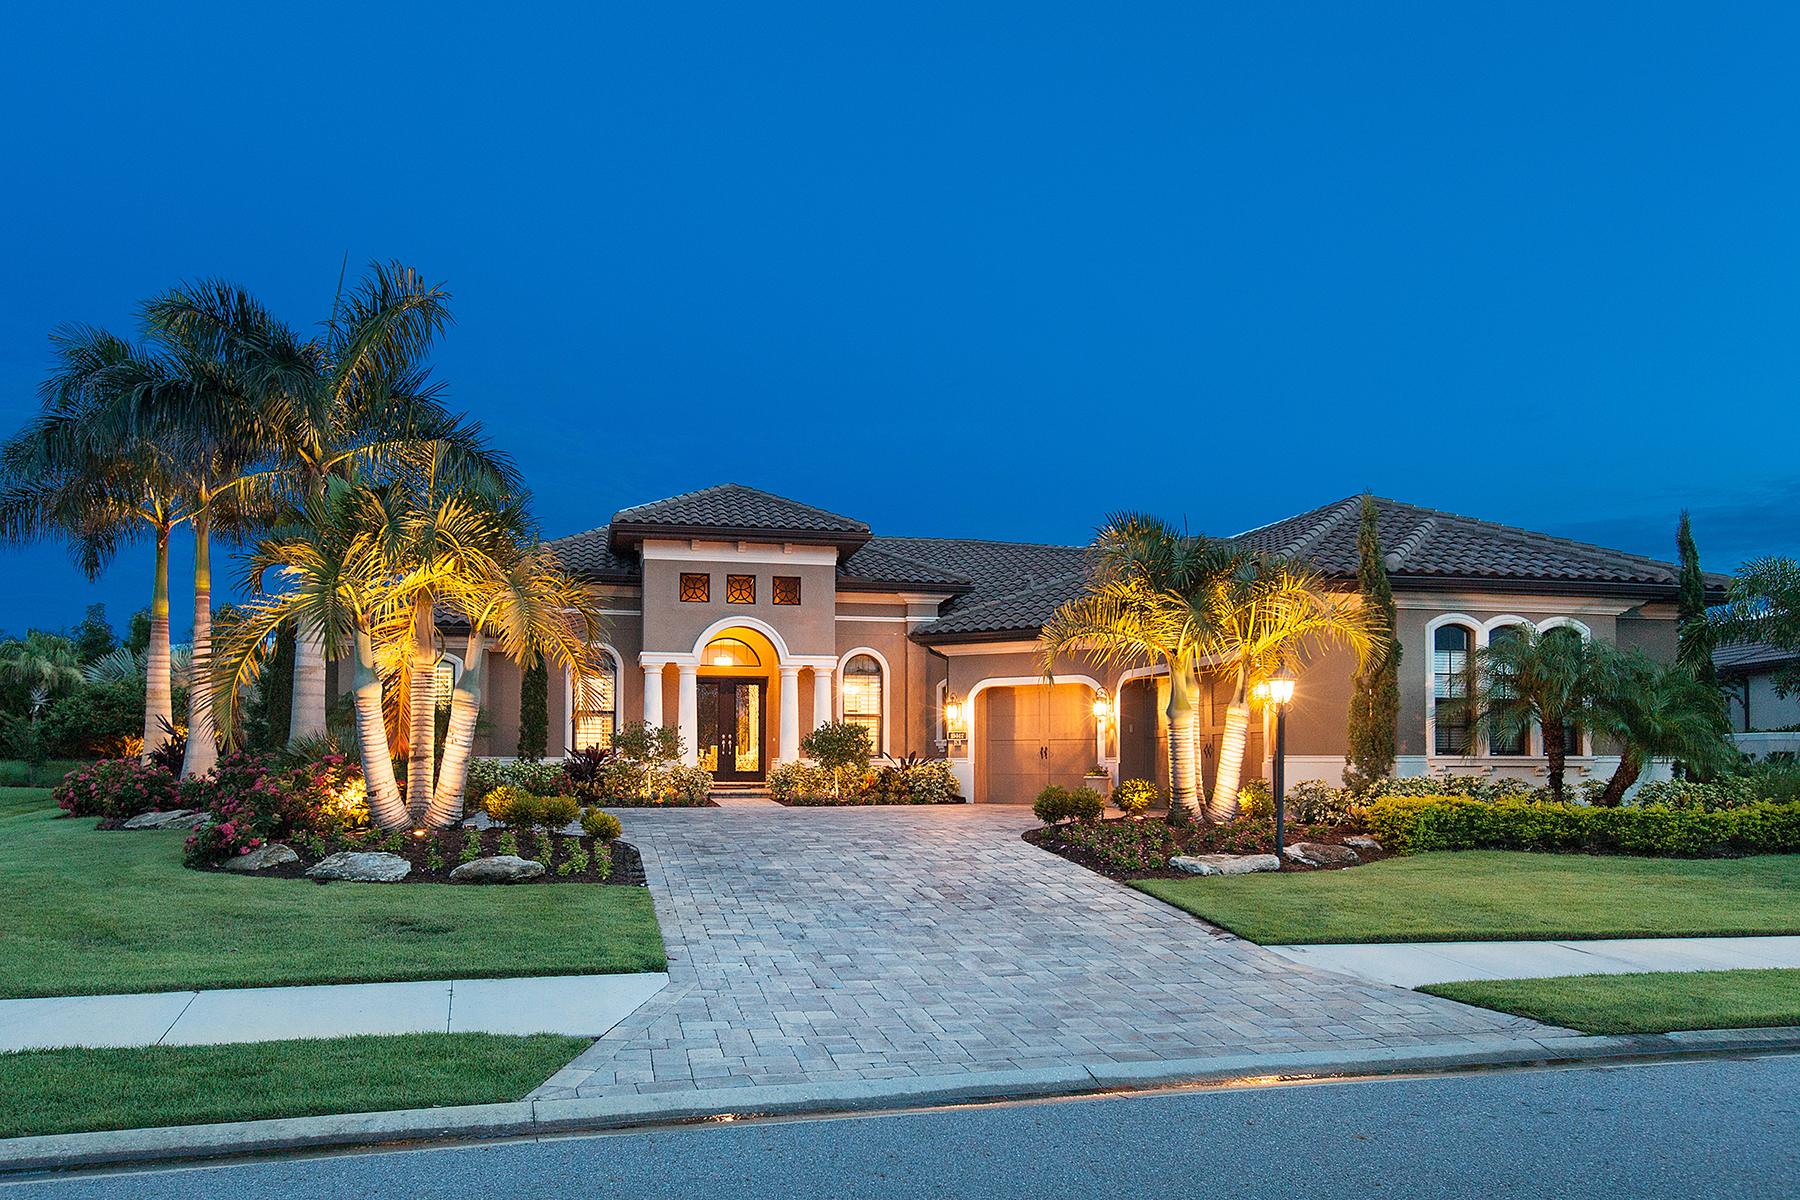 Villa per Vendita alle ore COUNTRY CLUB EAST 15512 Linn Park Terr Lakewood Ranch, Florida 34202 Stati Uniti